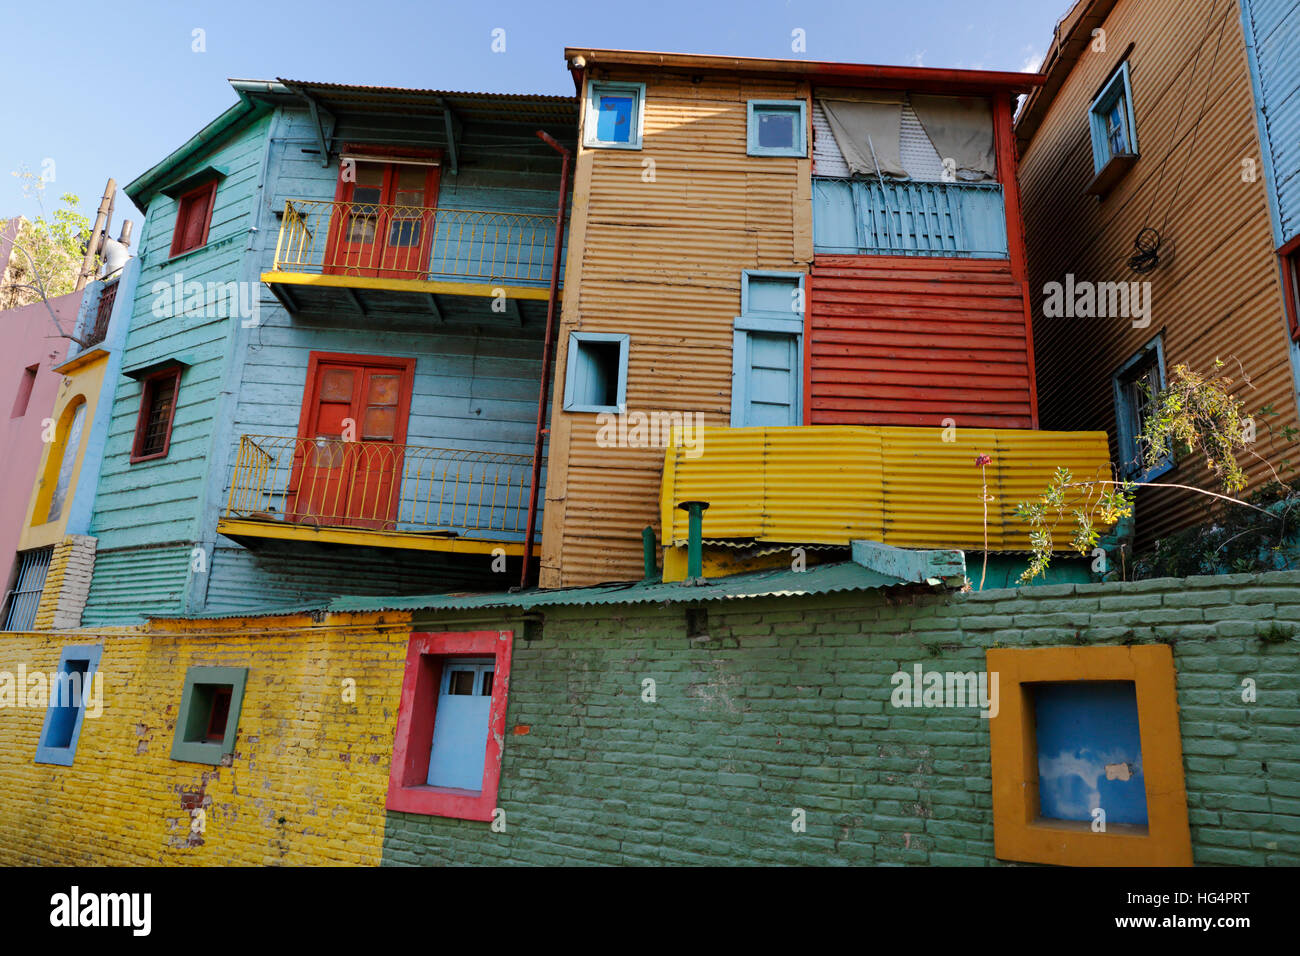 Brightly painted houses along El Caminito street in La Boca district, Buenos Aires, Argentina, South America - Stock Image